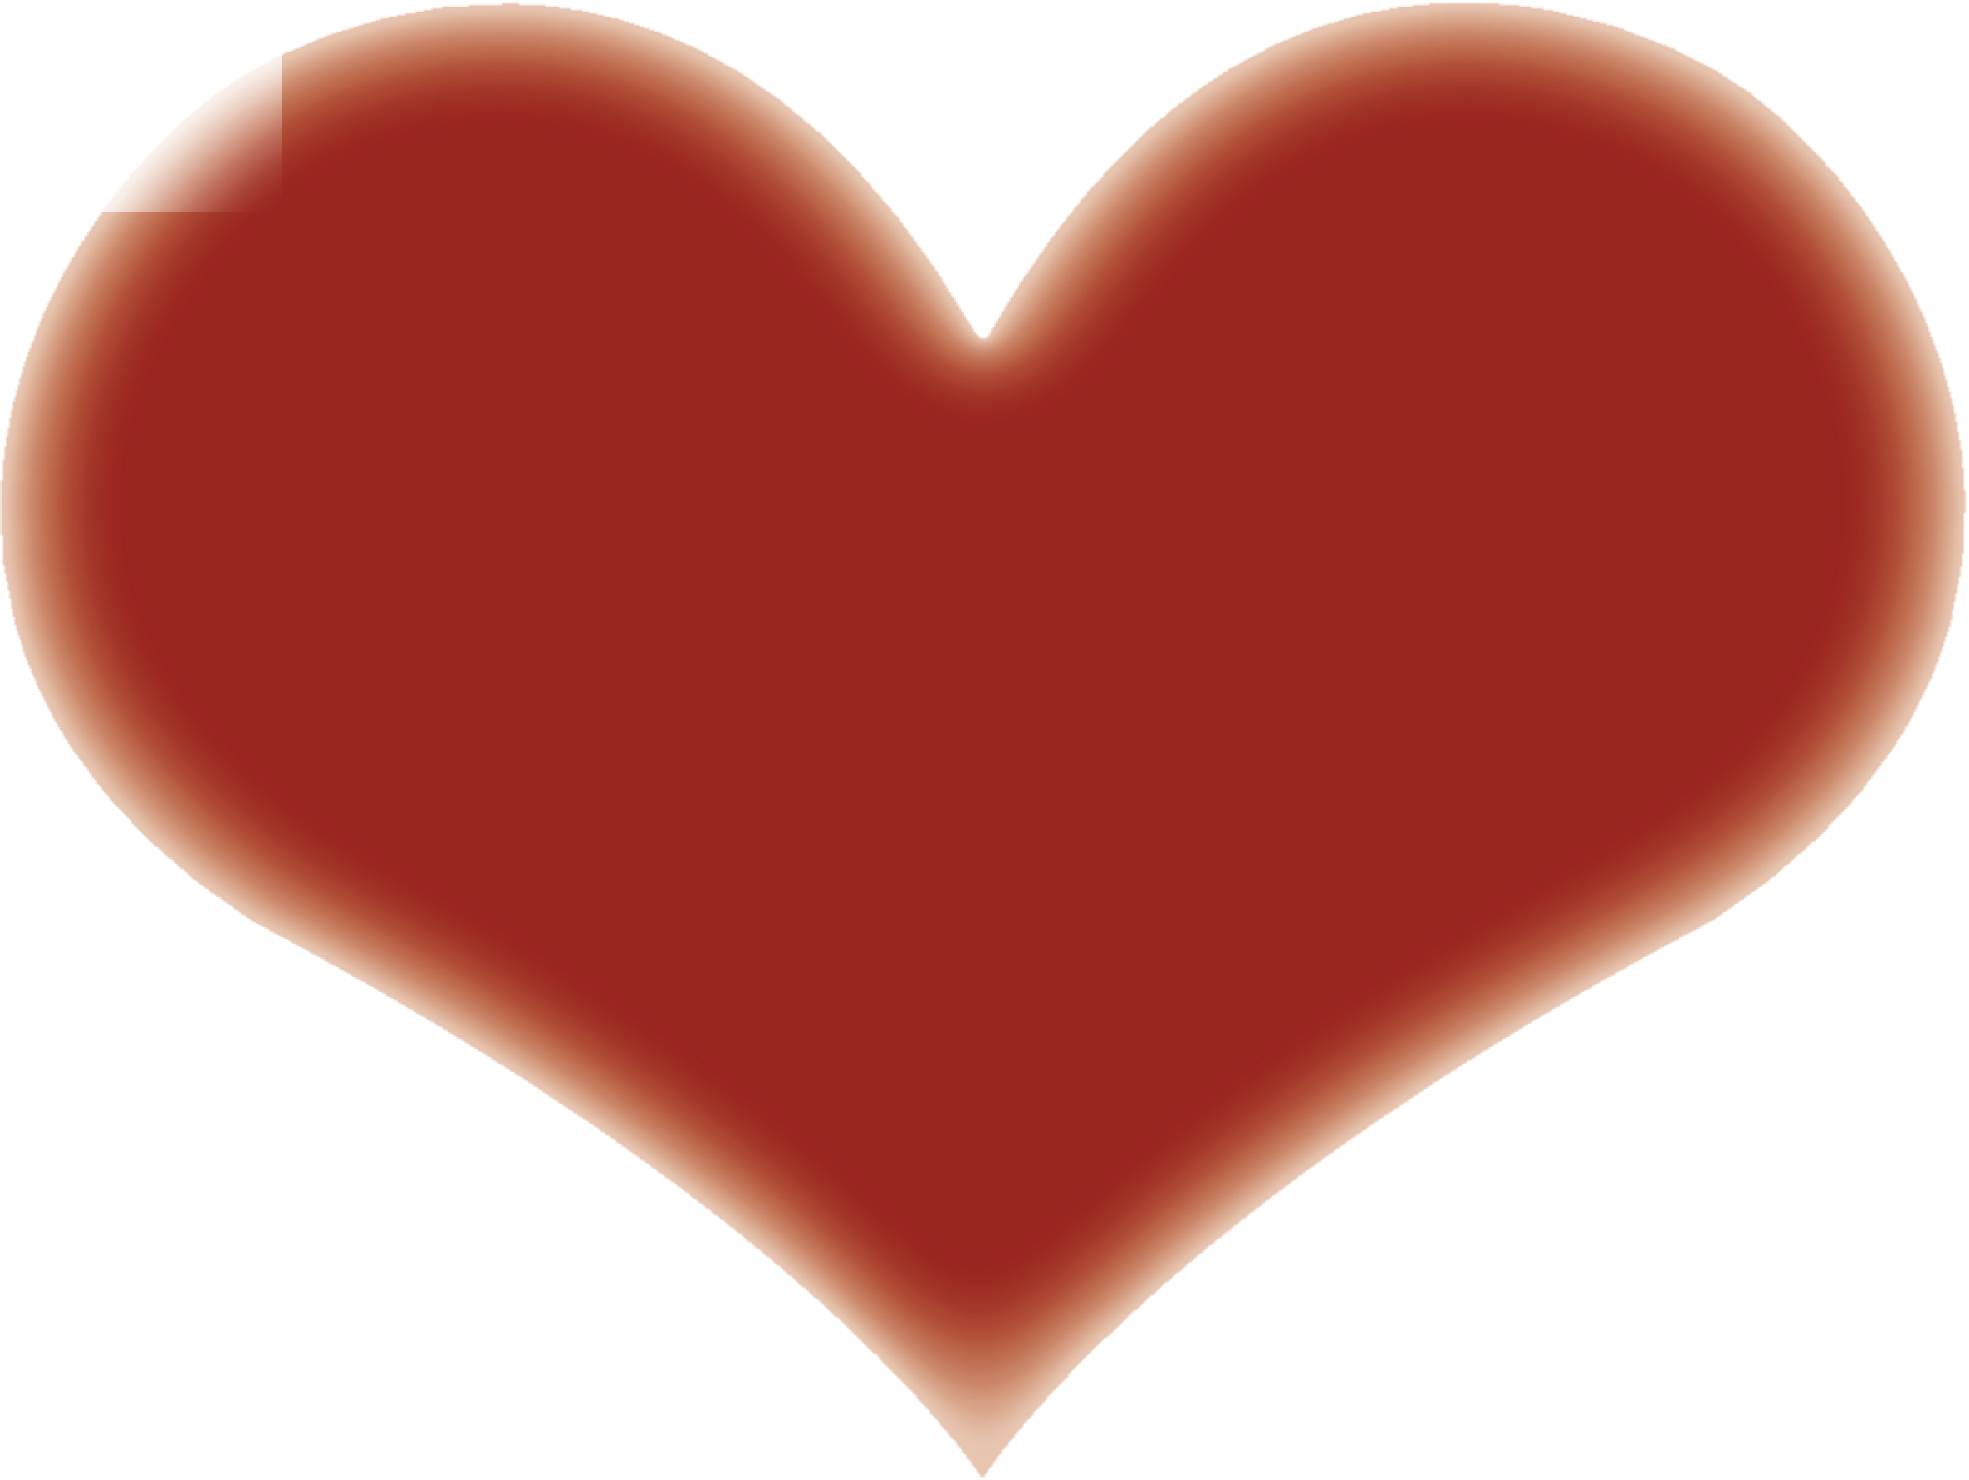 Heart-shaped clipart simple #7